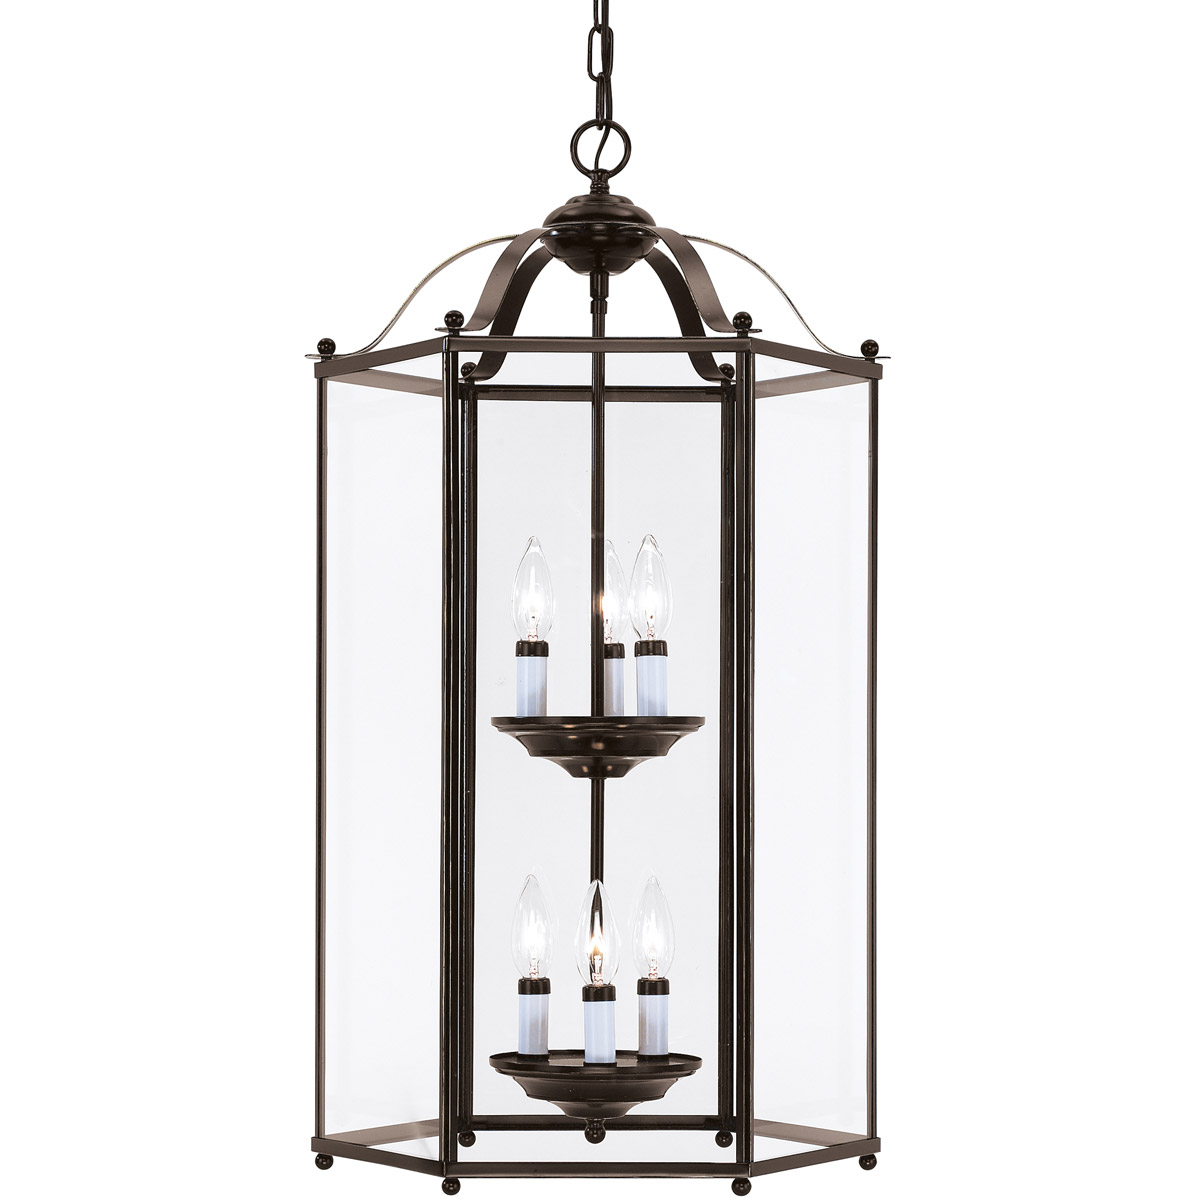 Sea Gull Lighting Bretton 6 Light Foyer Pendant in Heirloom Bronze 5233-782